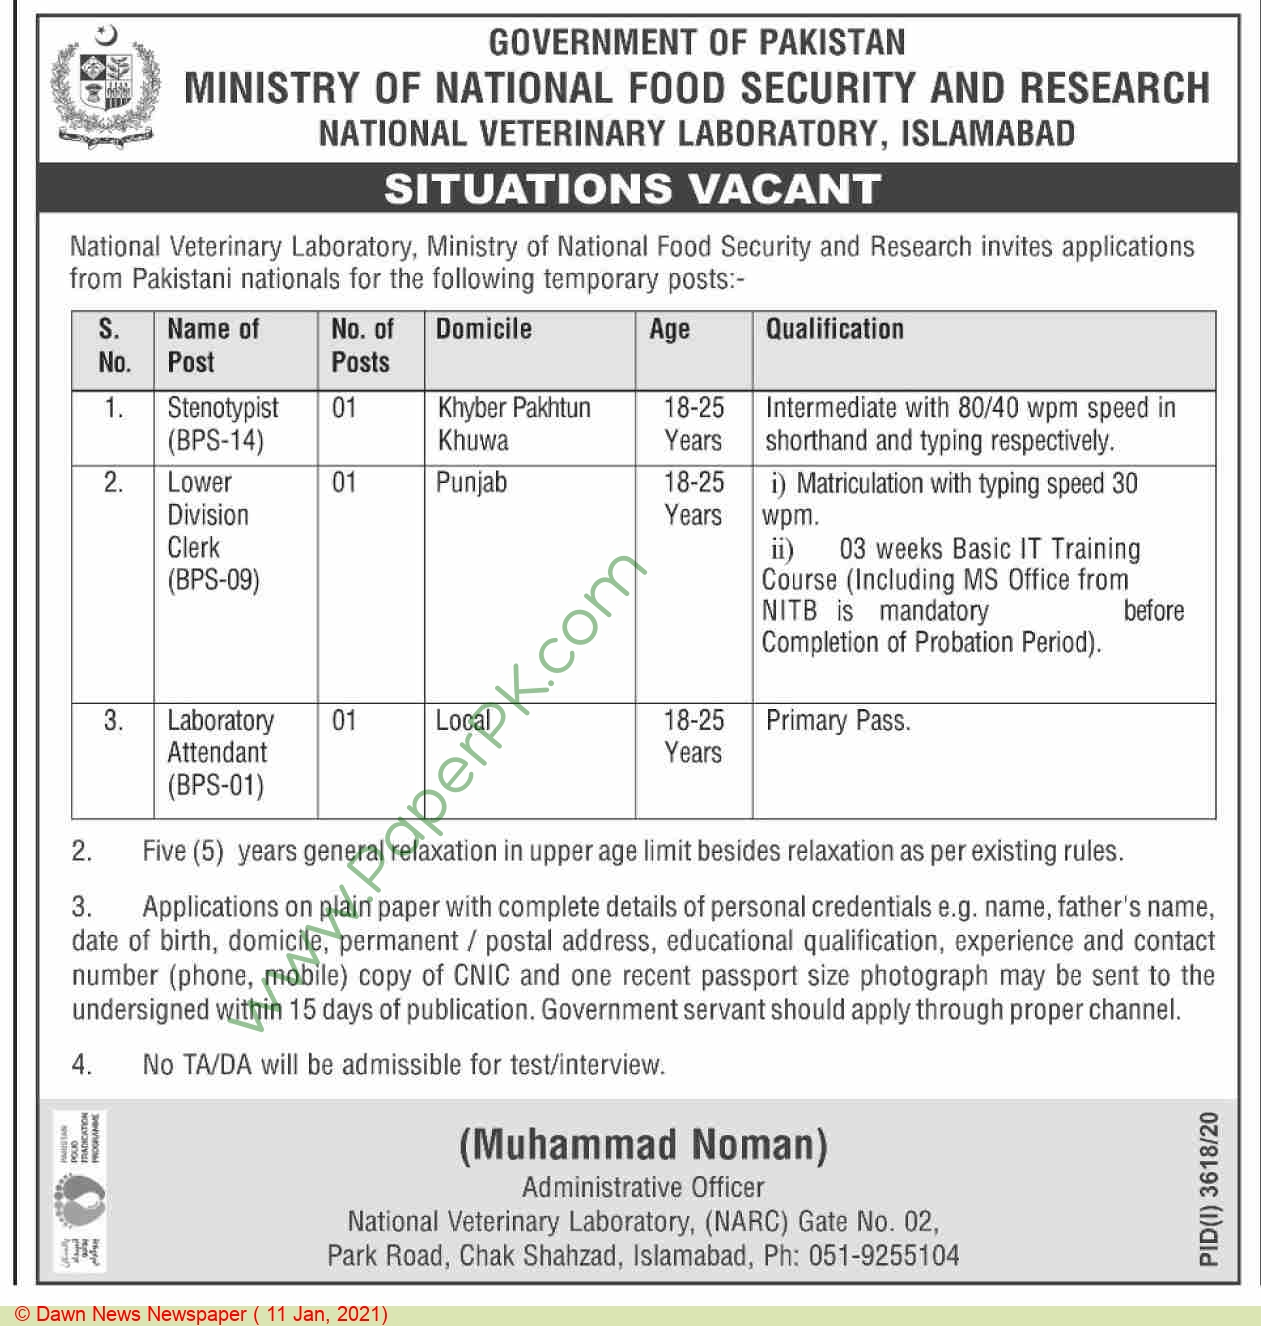 Ministry of National Food Security & Research jobs newspaper ad for Steno Typist in Islamabad on 2021-01-11